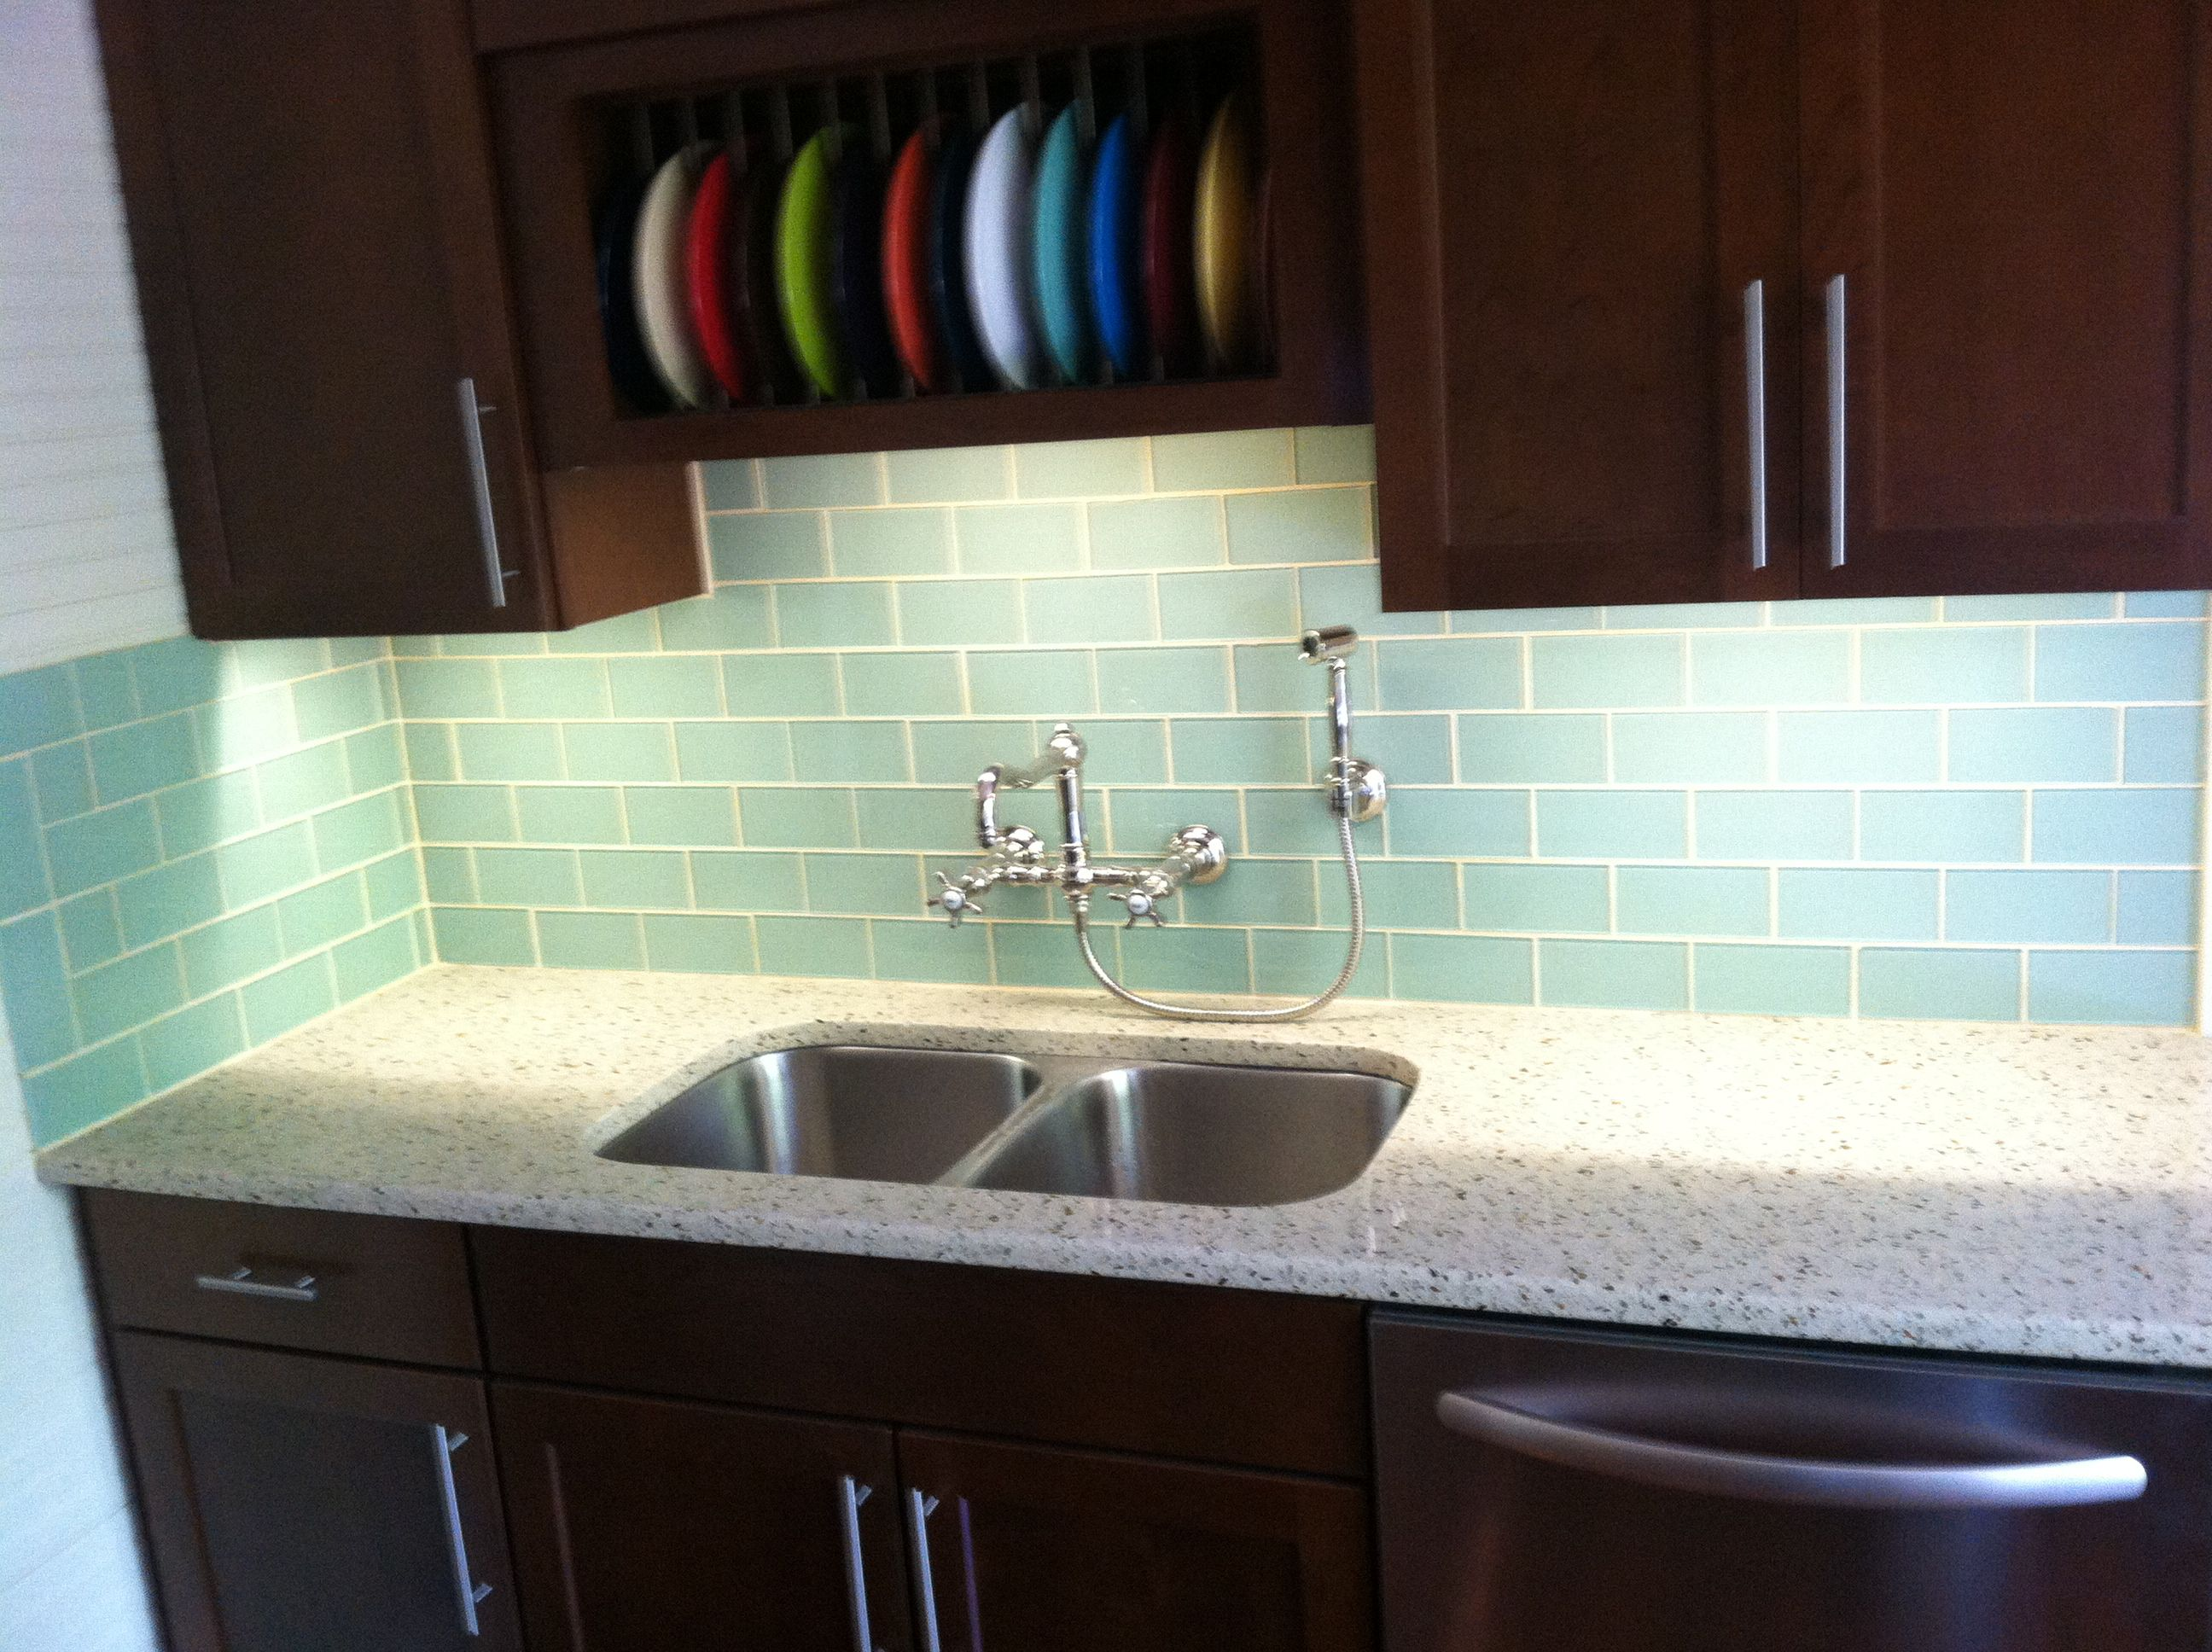 Tiles For Kitchen Back Splash: A Solution For Natural And